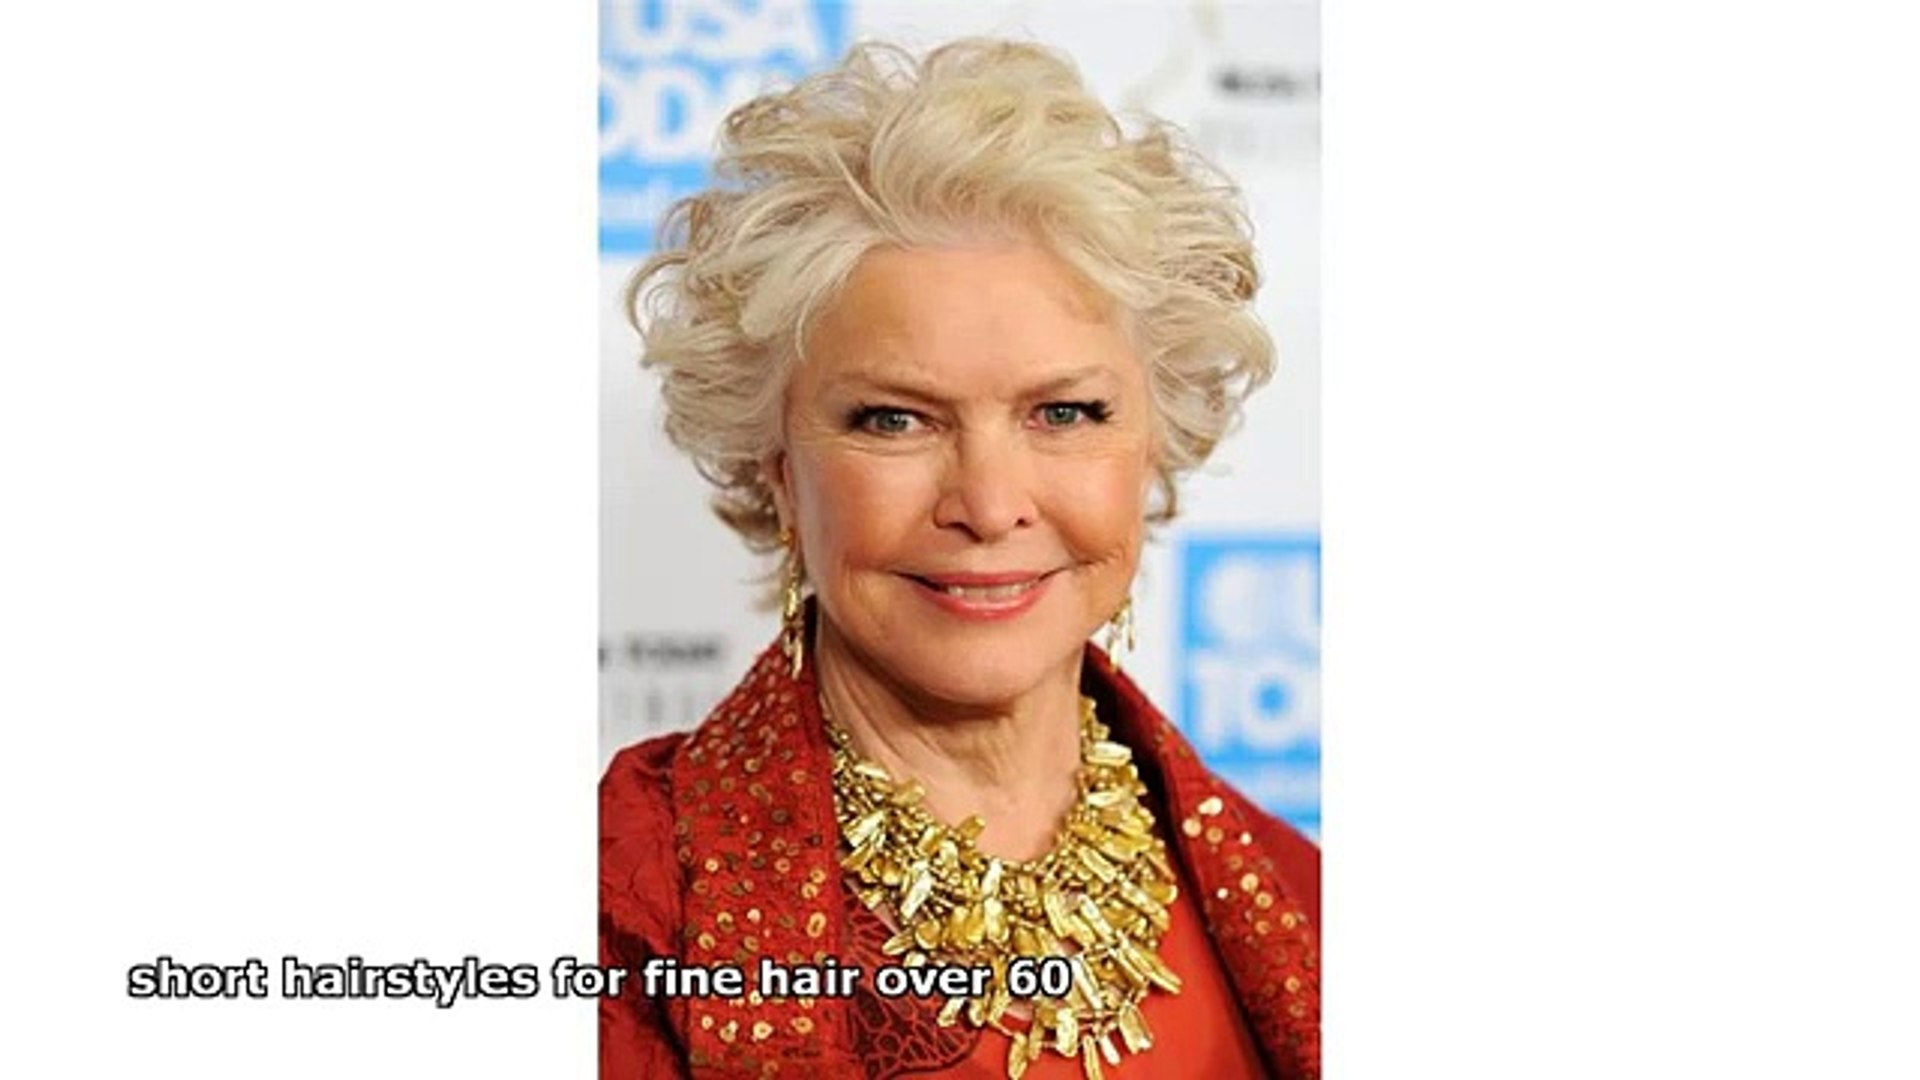 Short Hairstyles For Fine Hair Over 60 Video Dailymotion